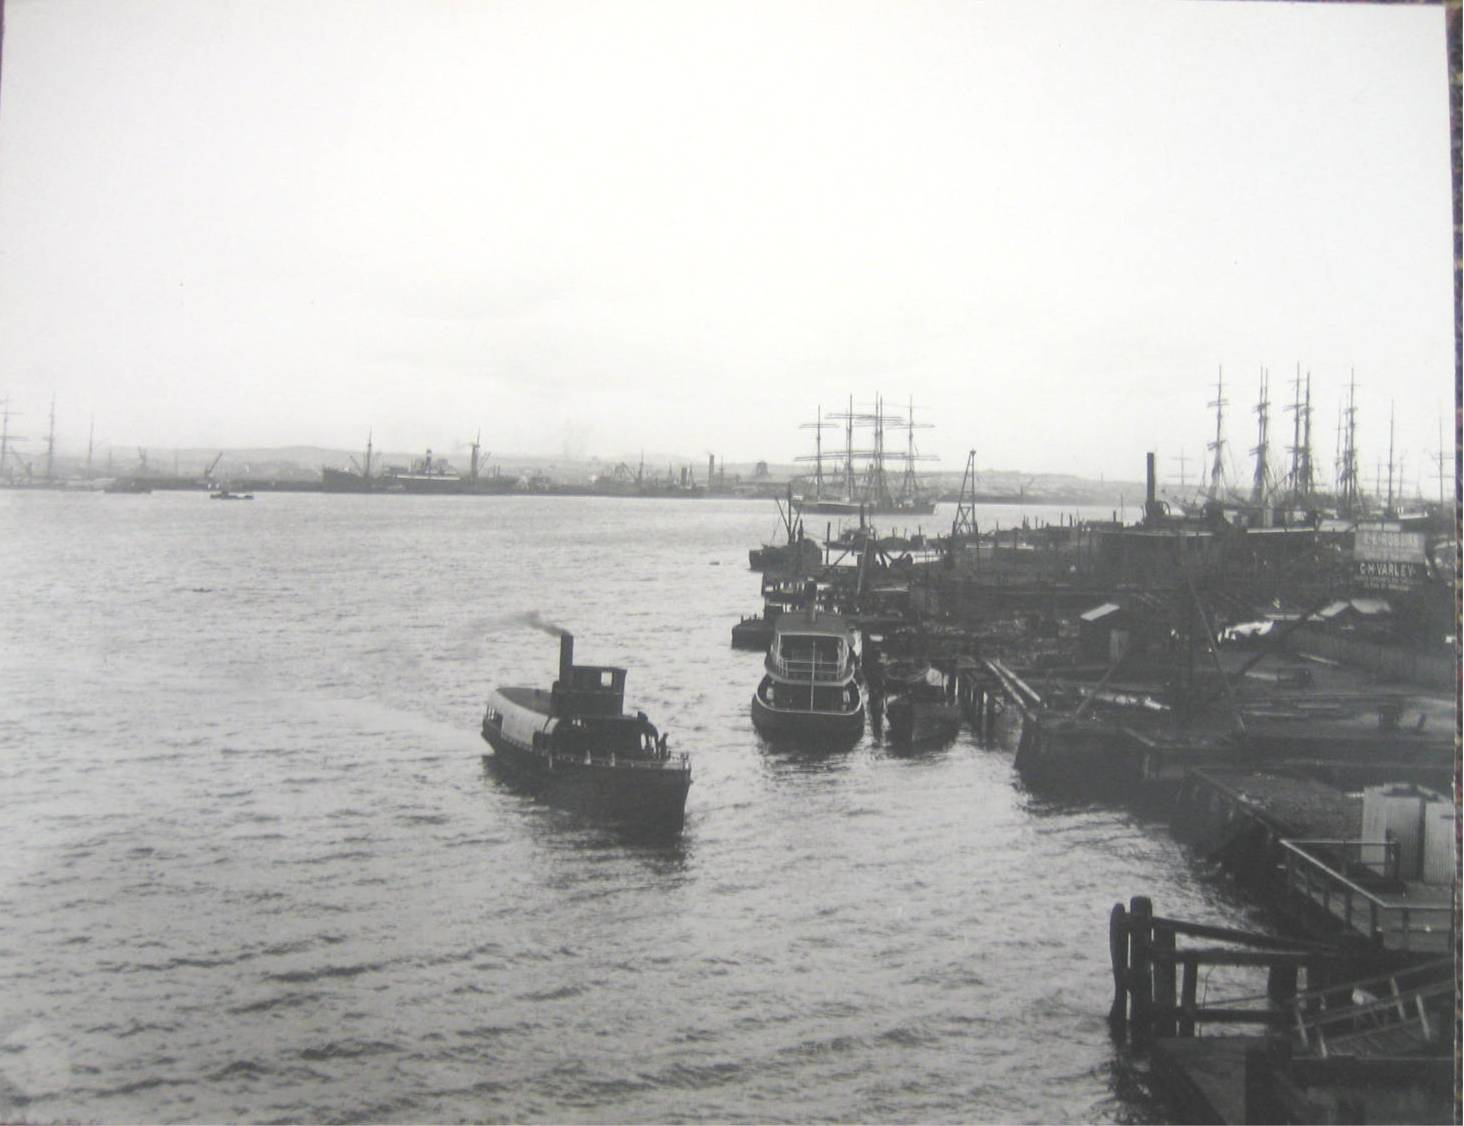 An early shot of Newcastle's famous ship port.